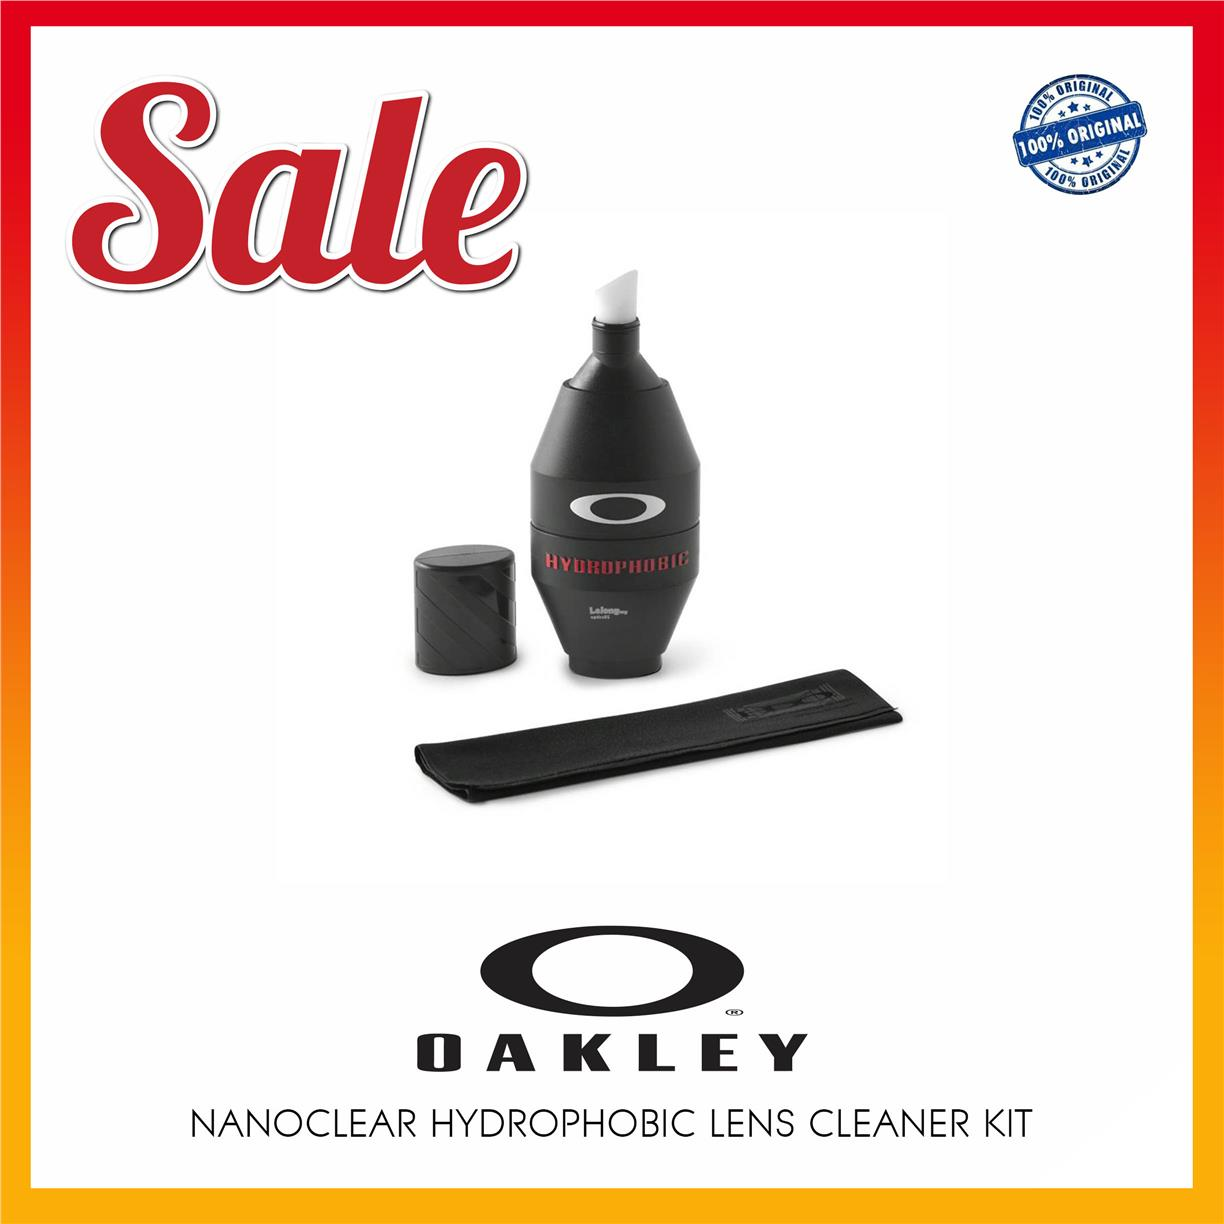 Oakley 07-622 Nanoclear Hydrophobic Lens Cleaner Kit / Clean Glasses